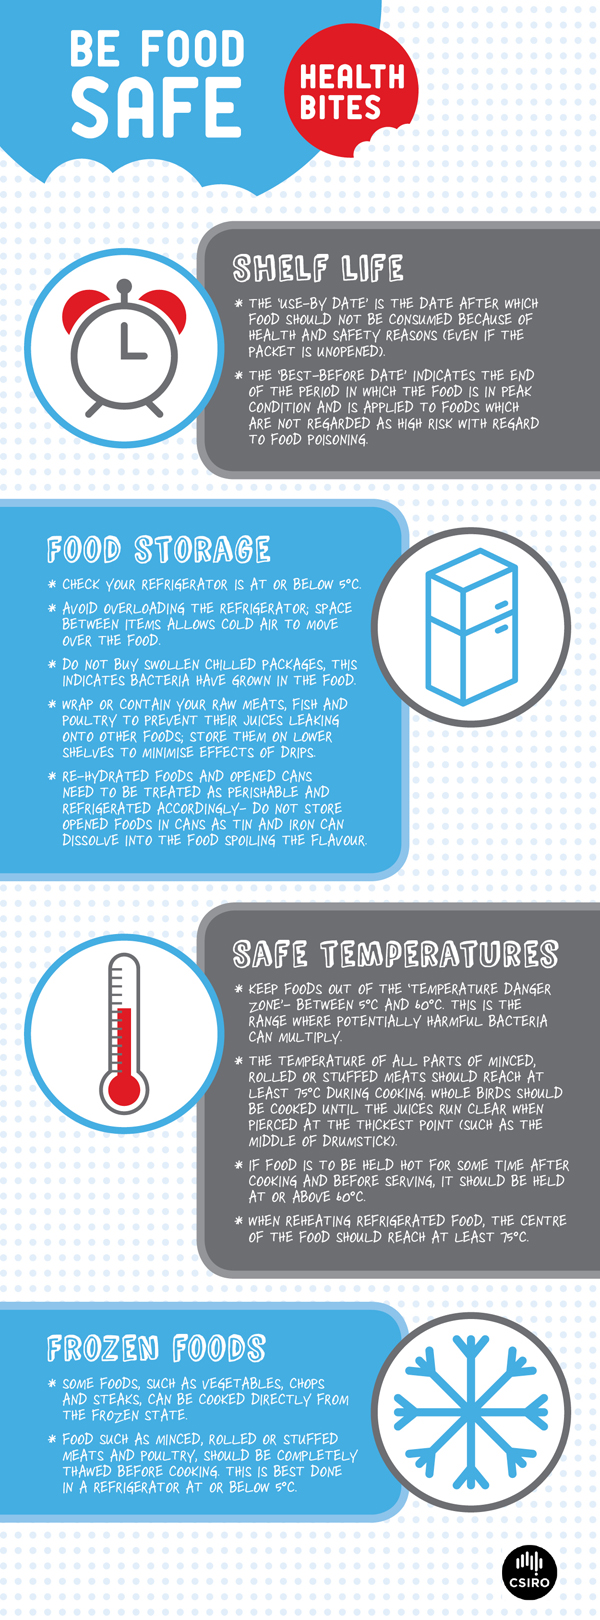 Food safety infographic